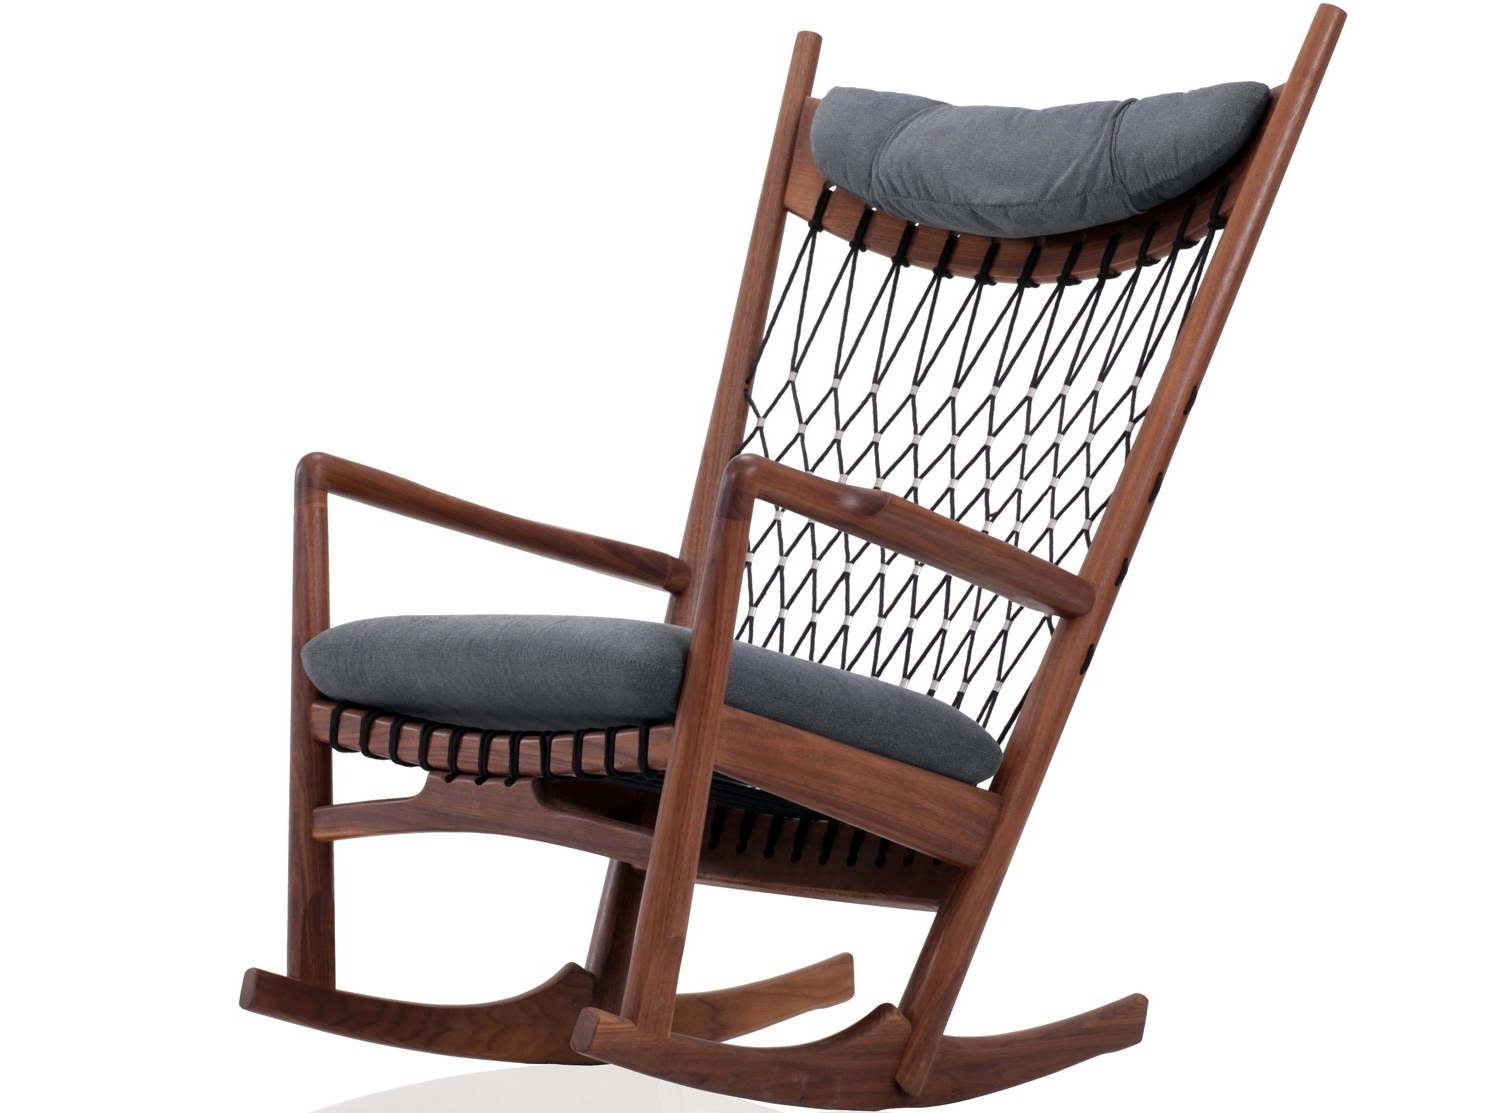 Rocking Chairs Adelaide Intended For Well Known Wegner Net Rocking Chair (Replica) (View 11 of 15)